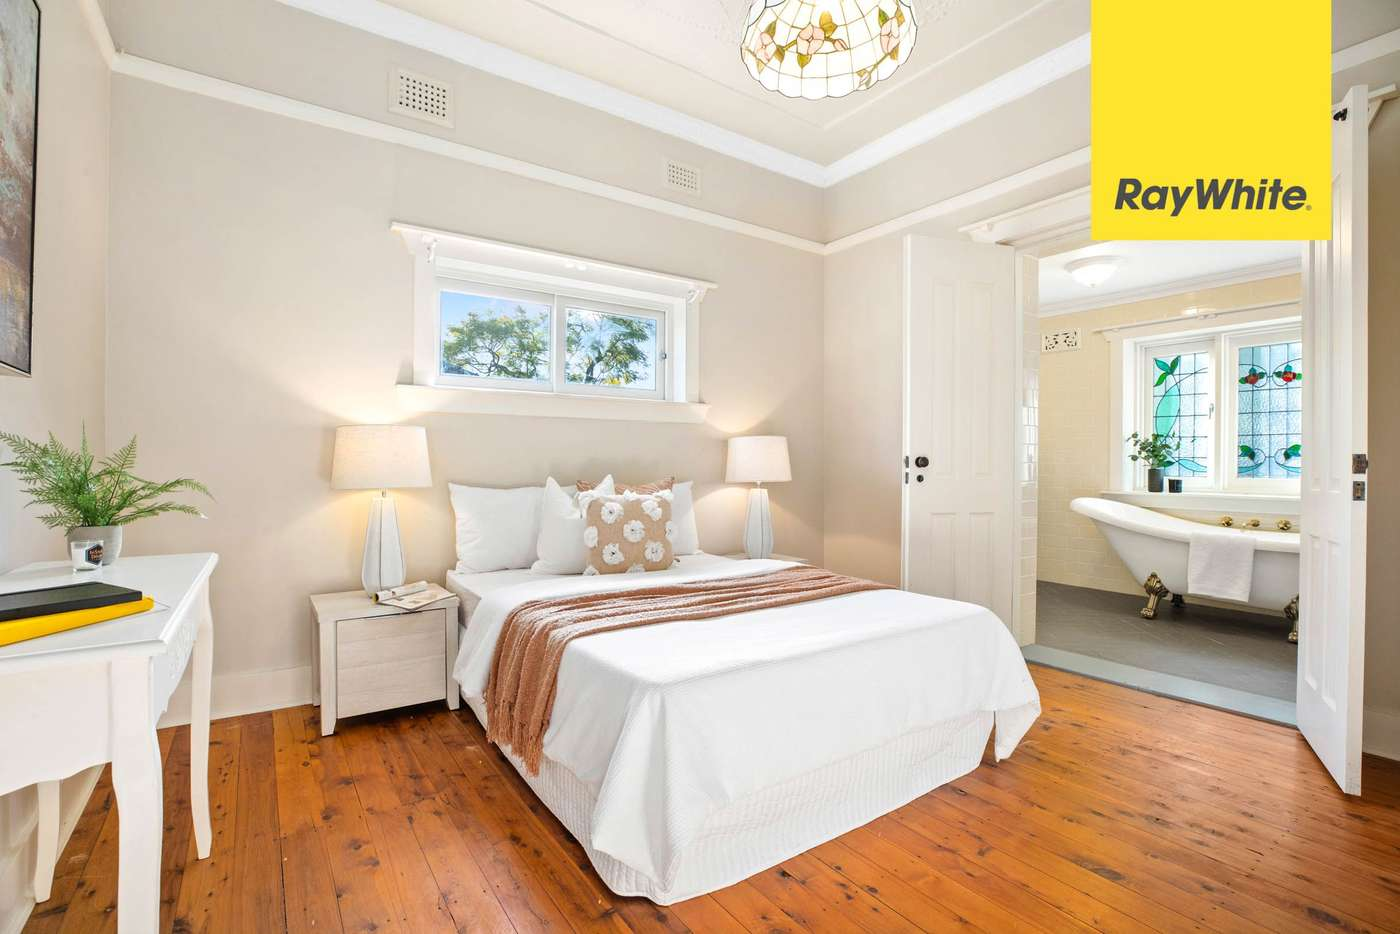 Sixth view of Homely house listing, 1100 Victoria Road, West Ryde NSW 2114